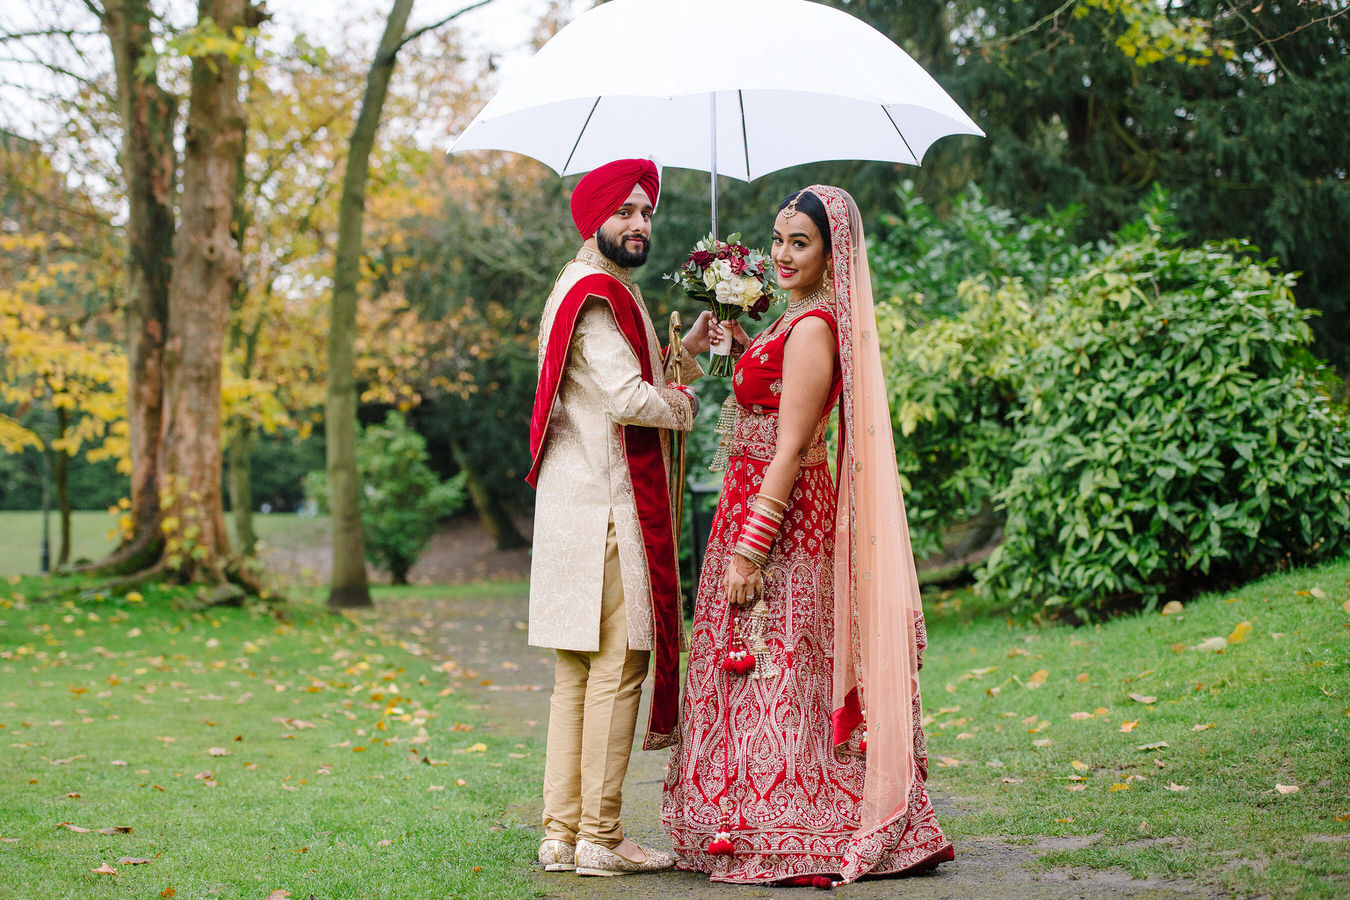 Sikh Asian wedding bride and groom in the garden holding a white umbrella and a bouquet in hands